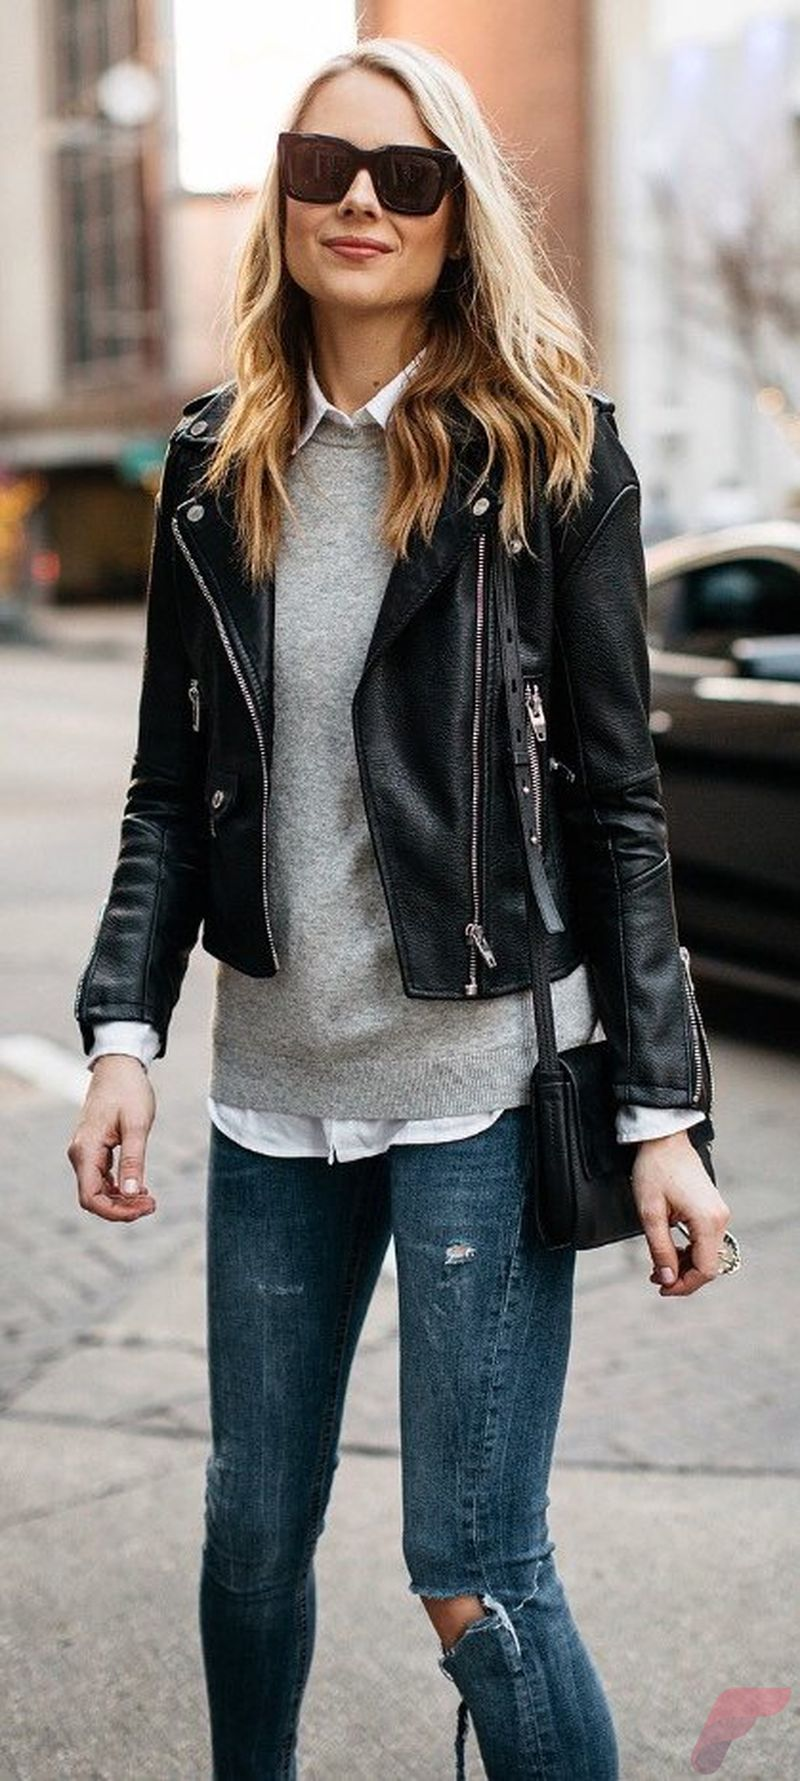 Black leather jacket outfit 60